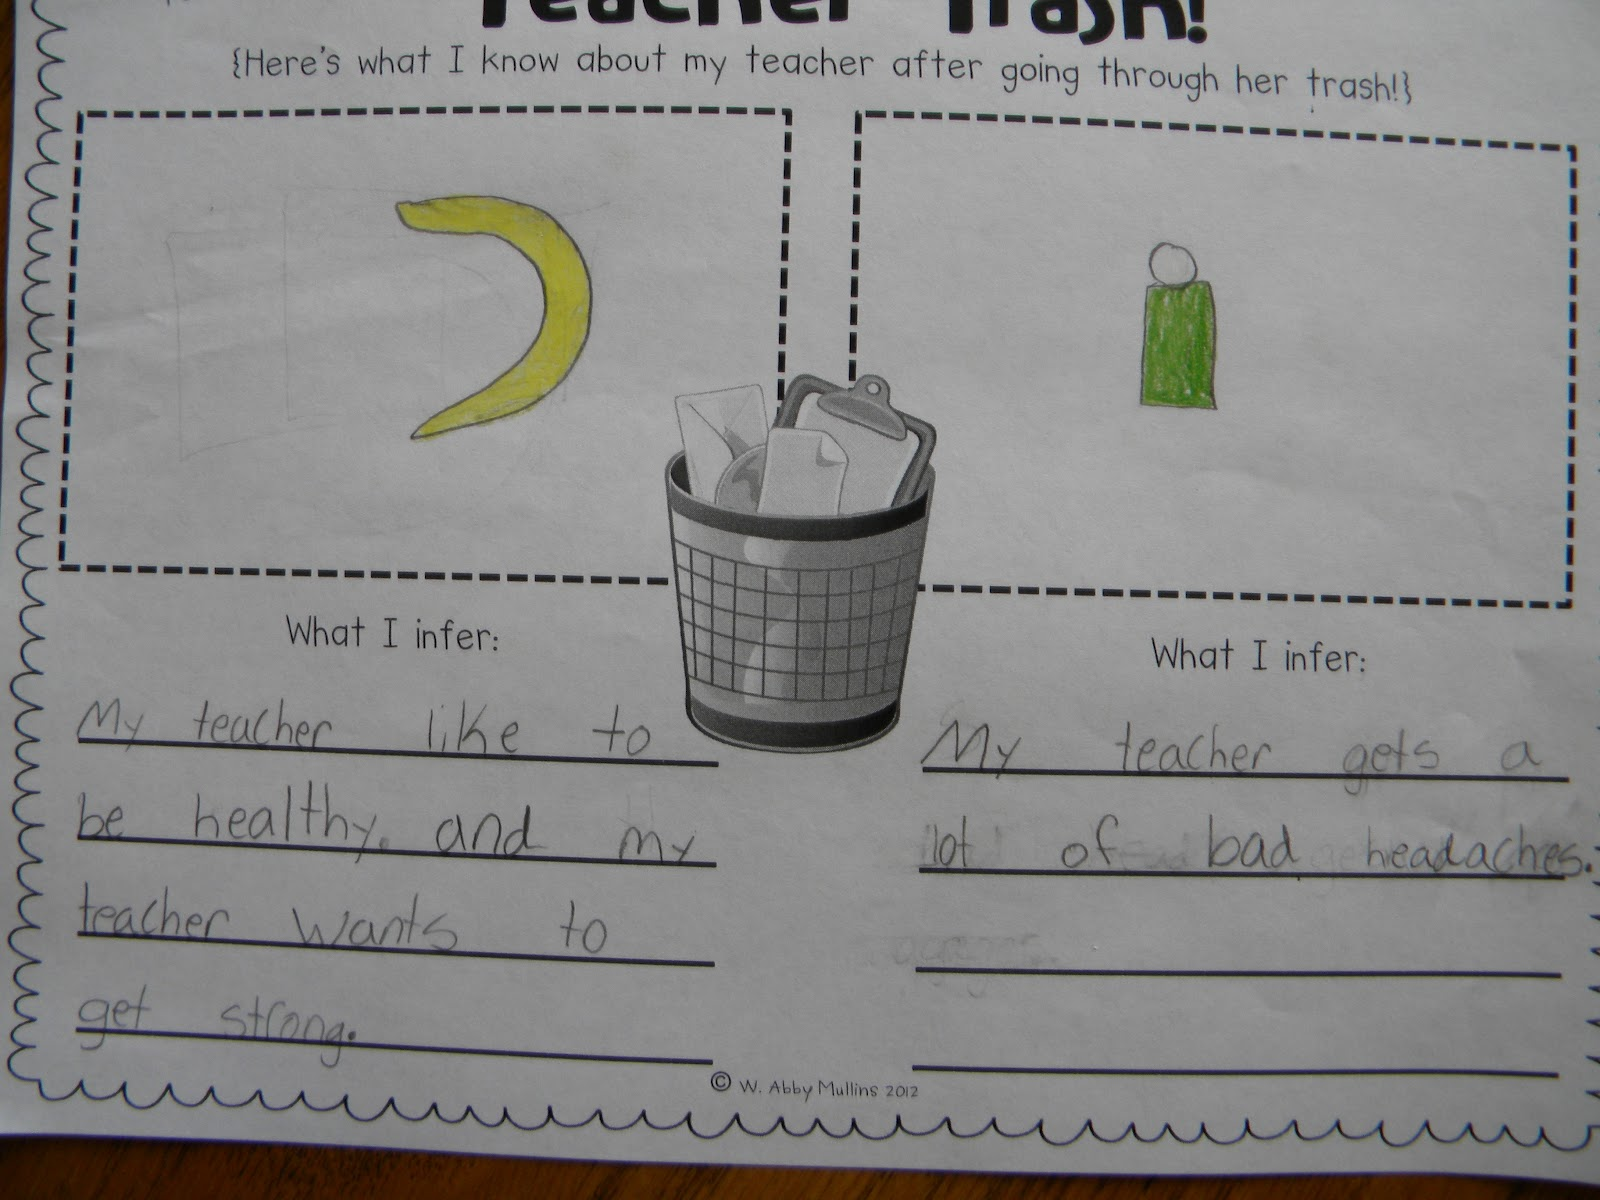 What Can You Infer